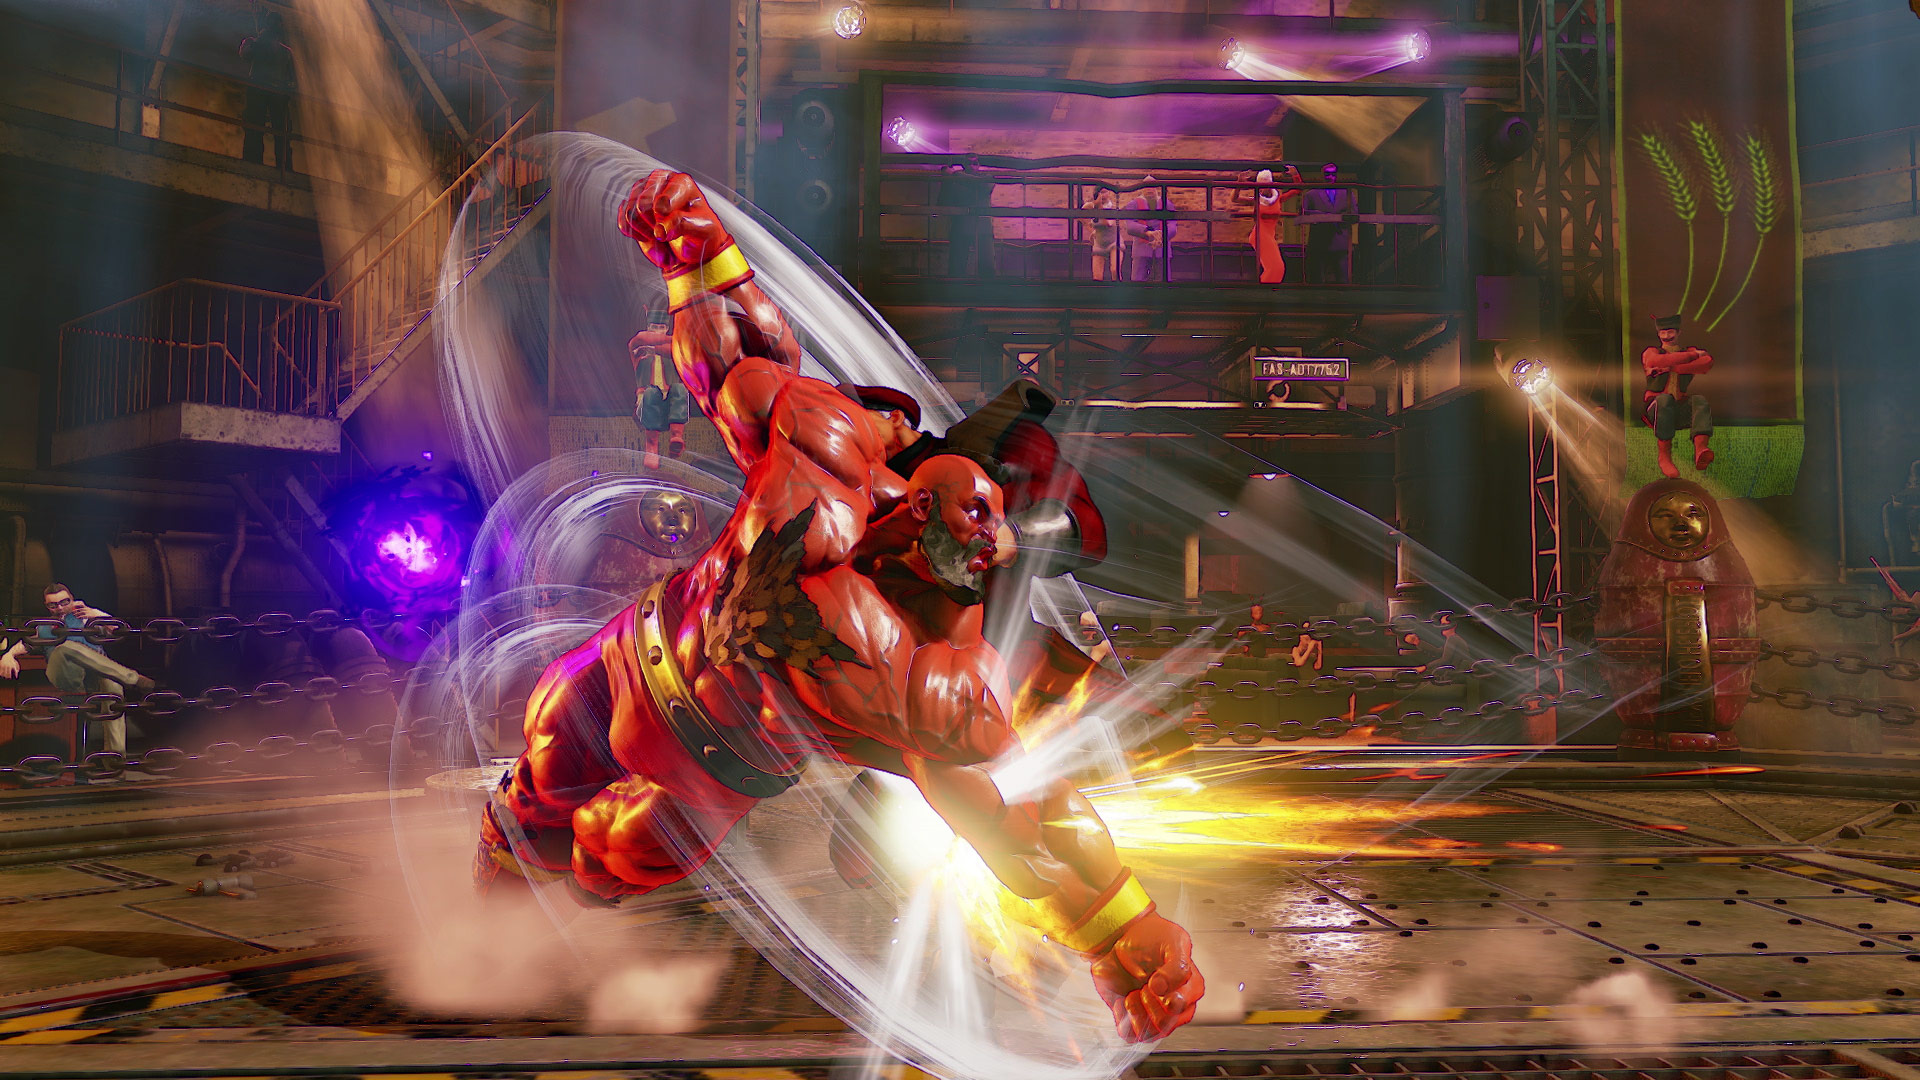 Zangief returns in Street Fighter 5 18 out of 18 image gallery